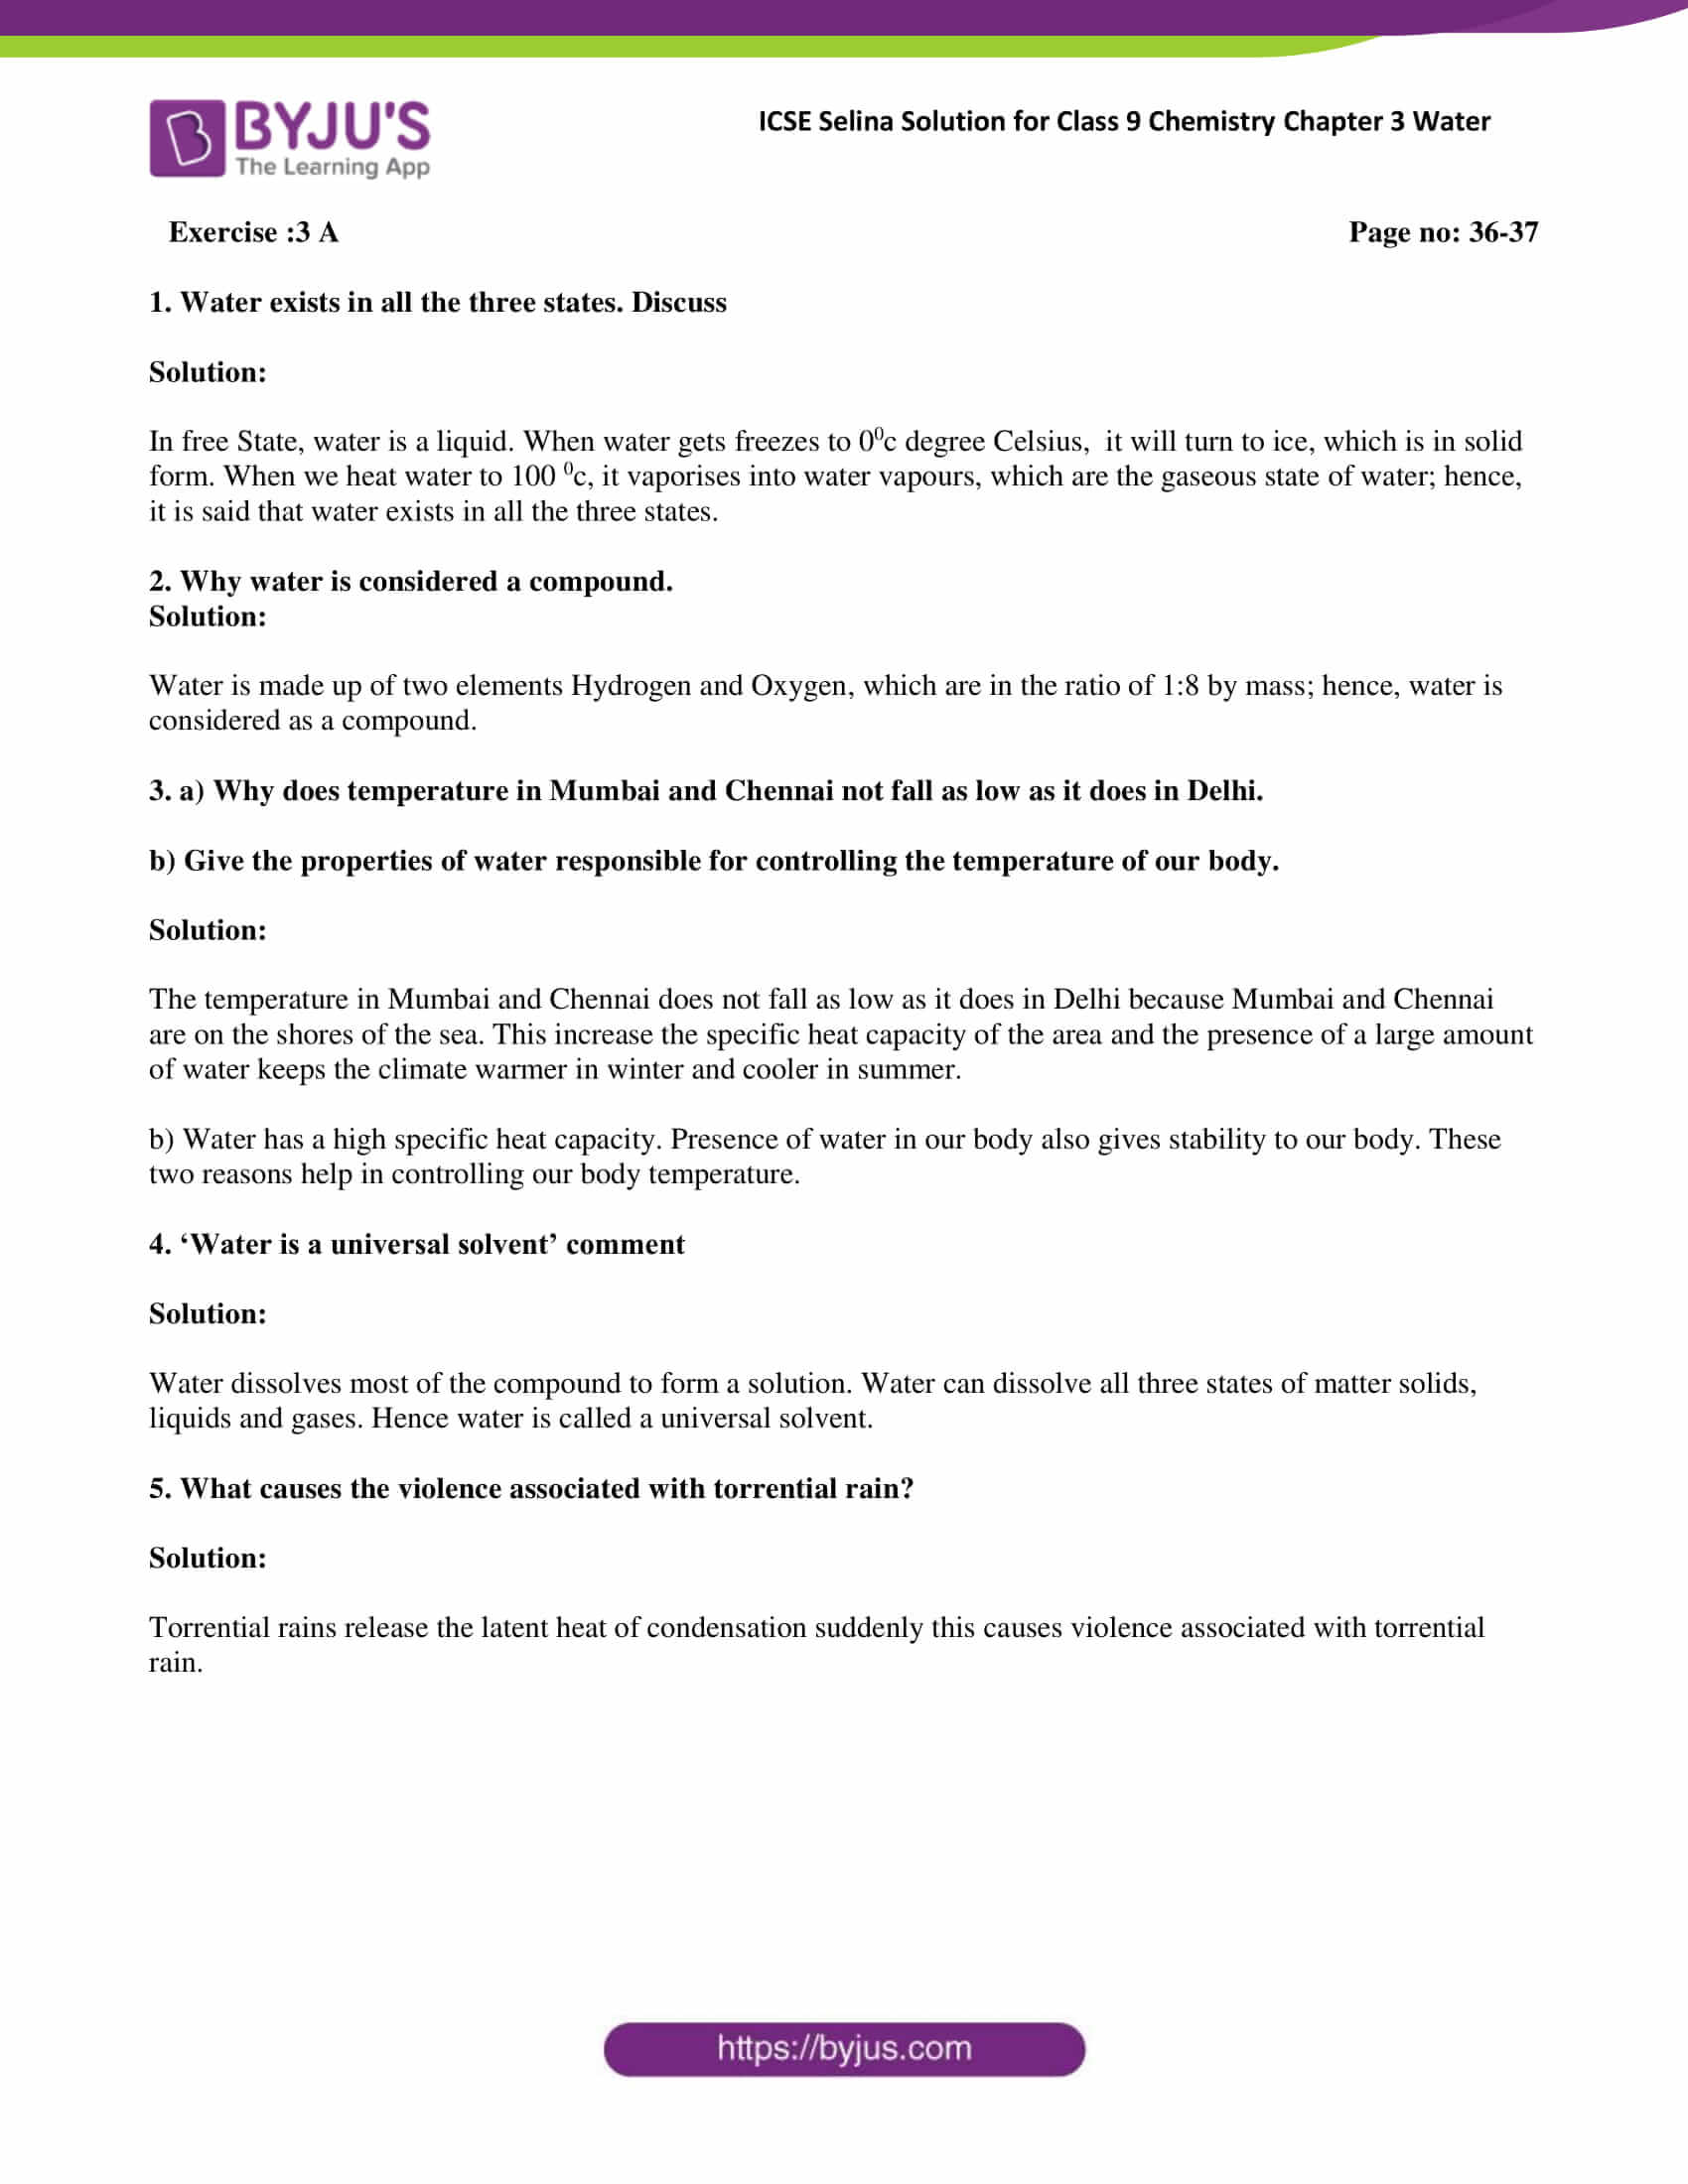 Selina Solutions Class 9 Concise Chemistry Chapter 3 Water